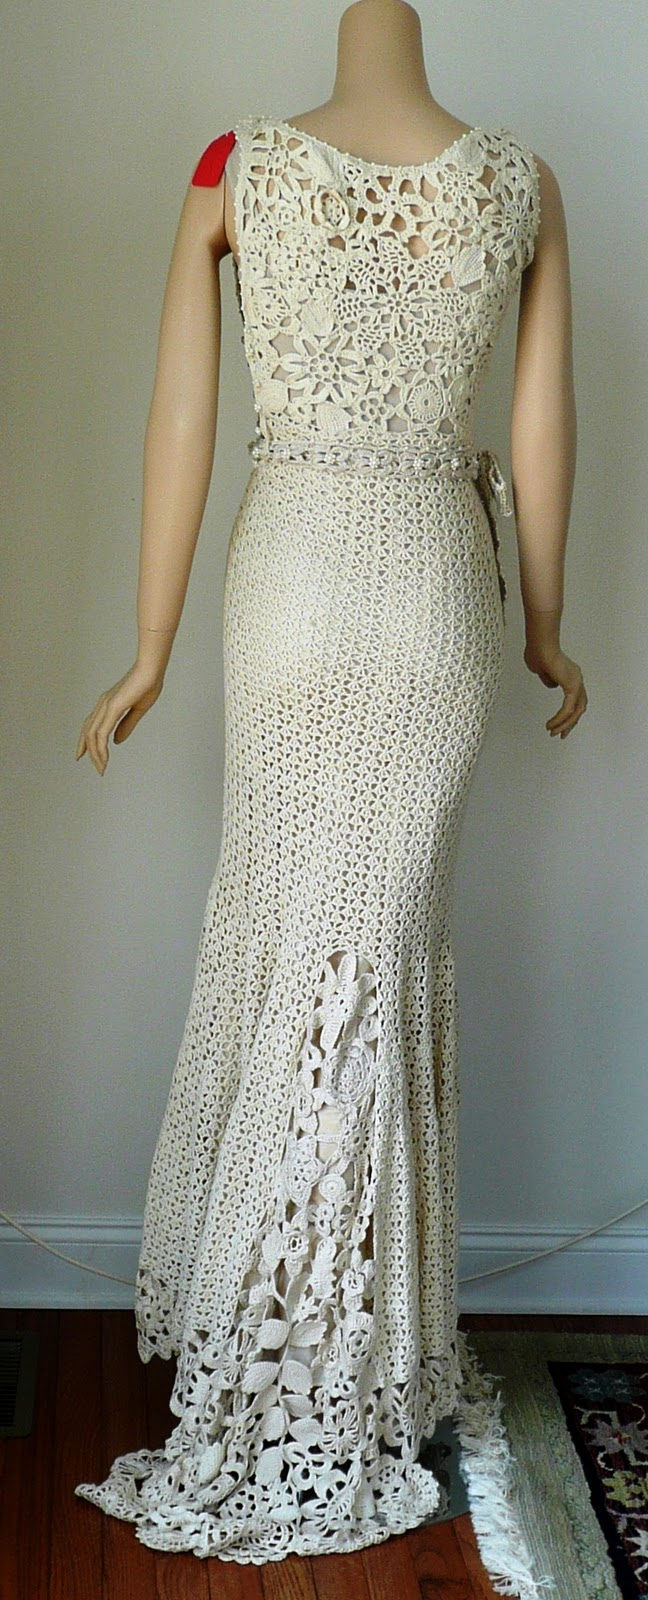 Crochet Dress Pattern Wedding Crochet Patterns